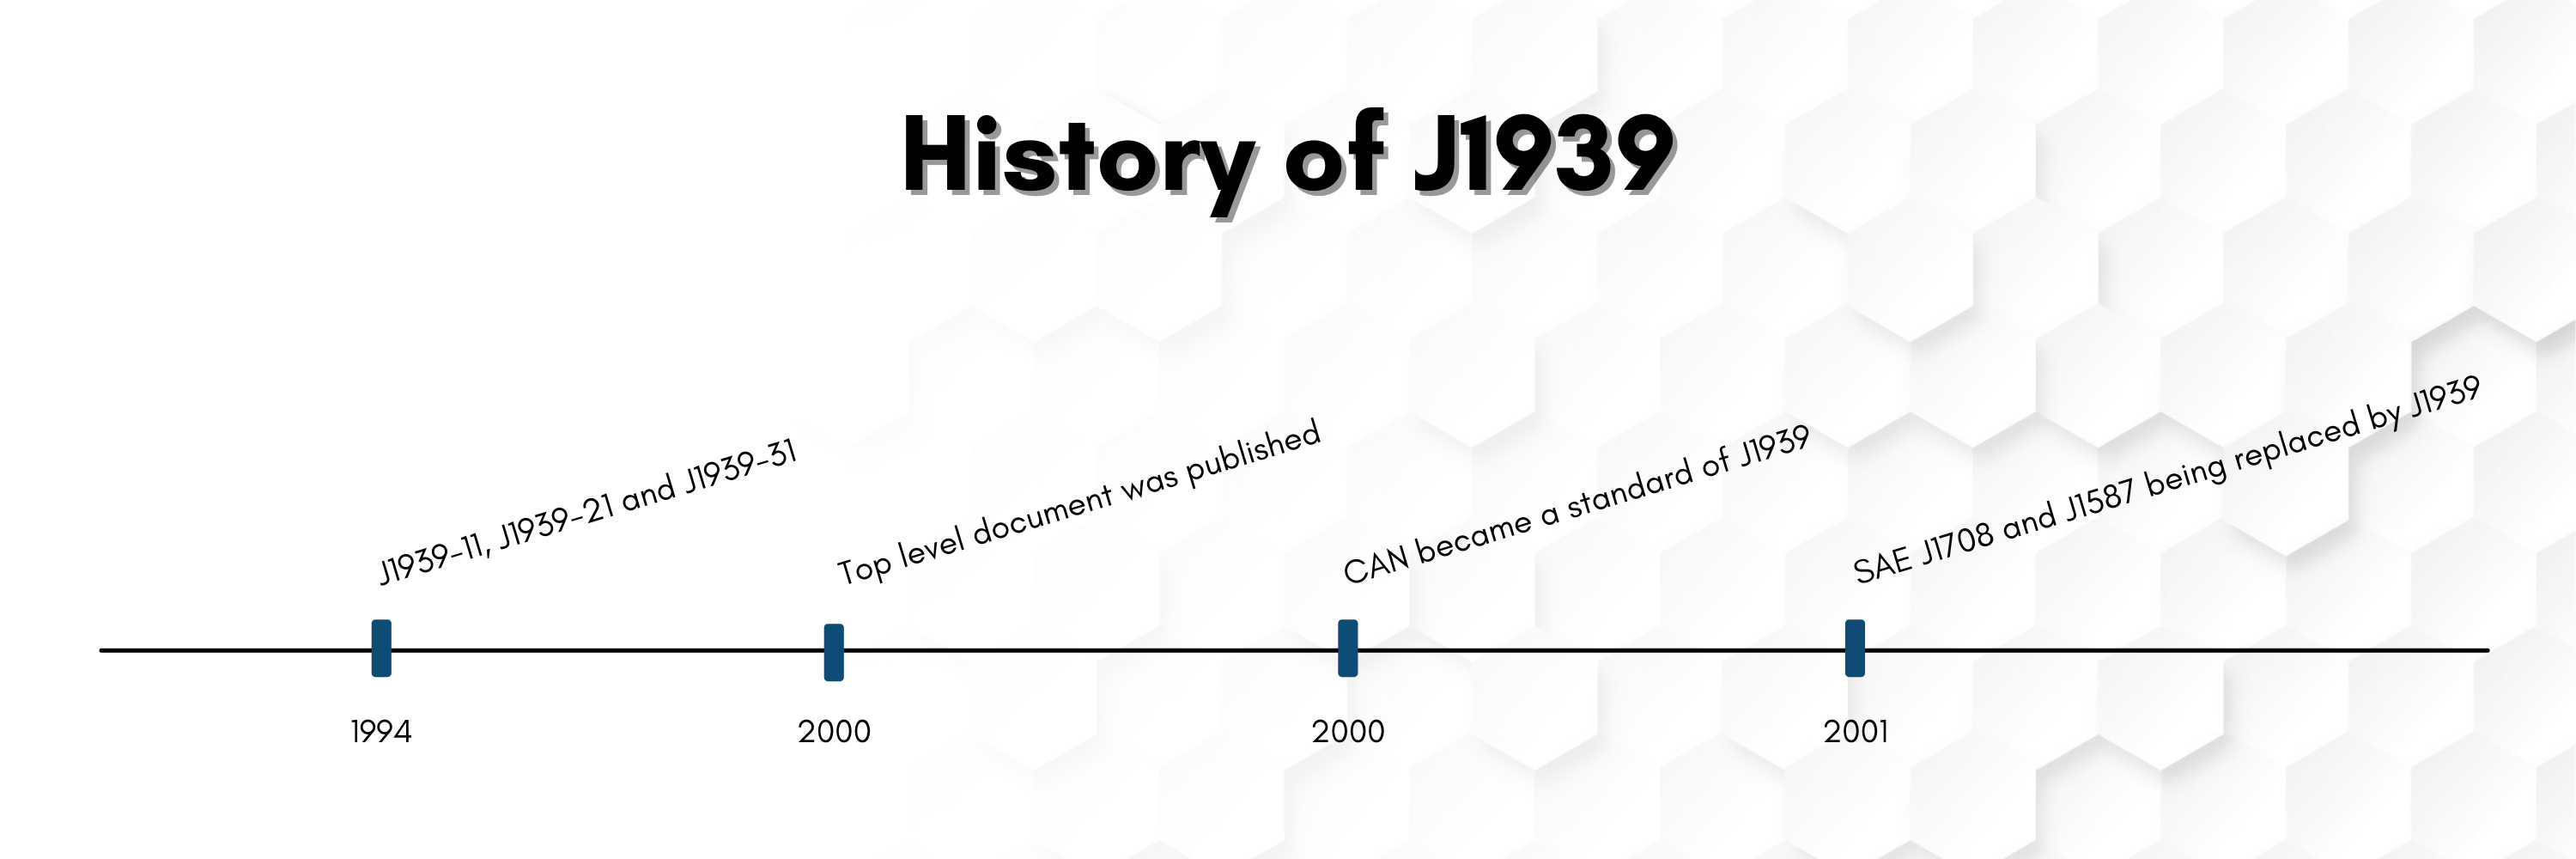 Timeline showing the development and history of j1939